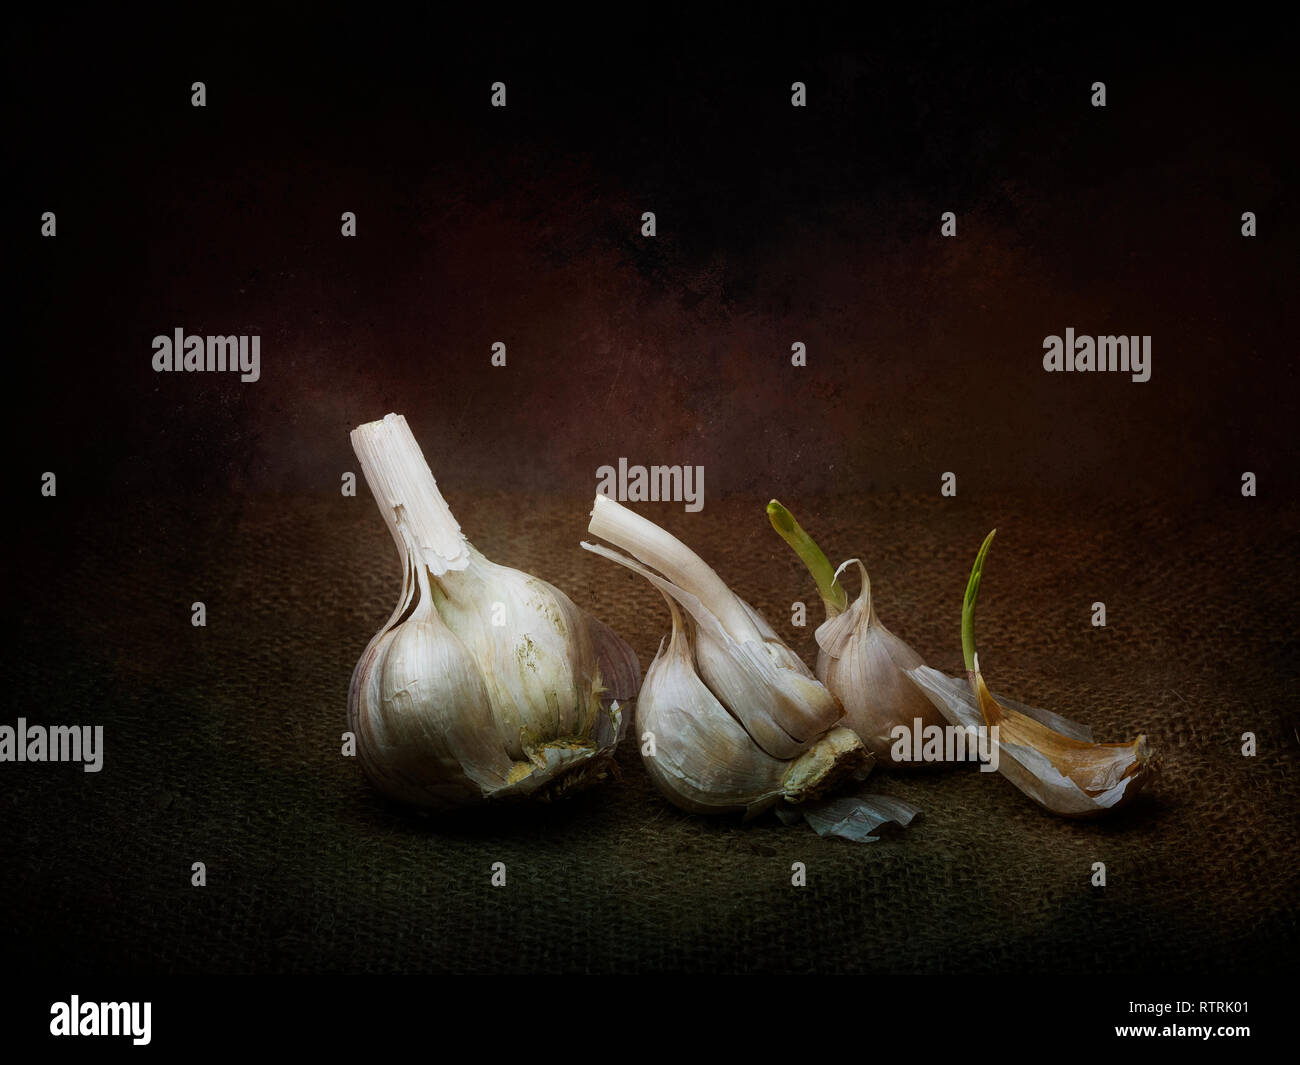 Garlic still life arrangement. Sprouting. Chiaroscuro style light painting with texture. - Stock Image